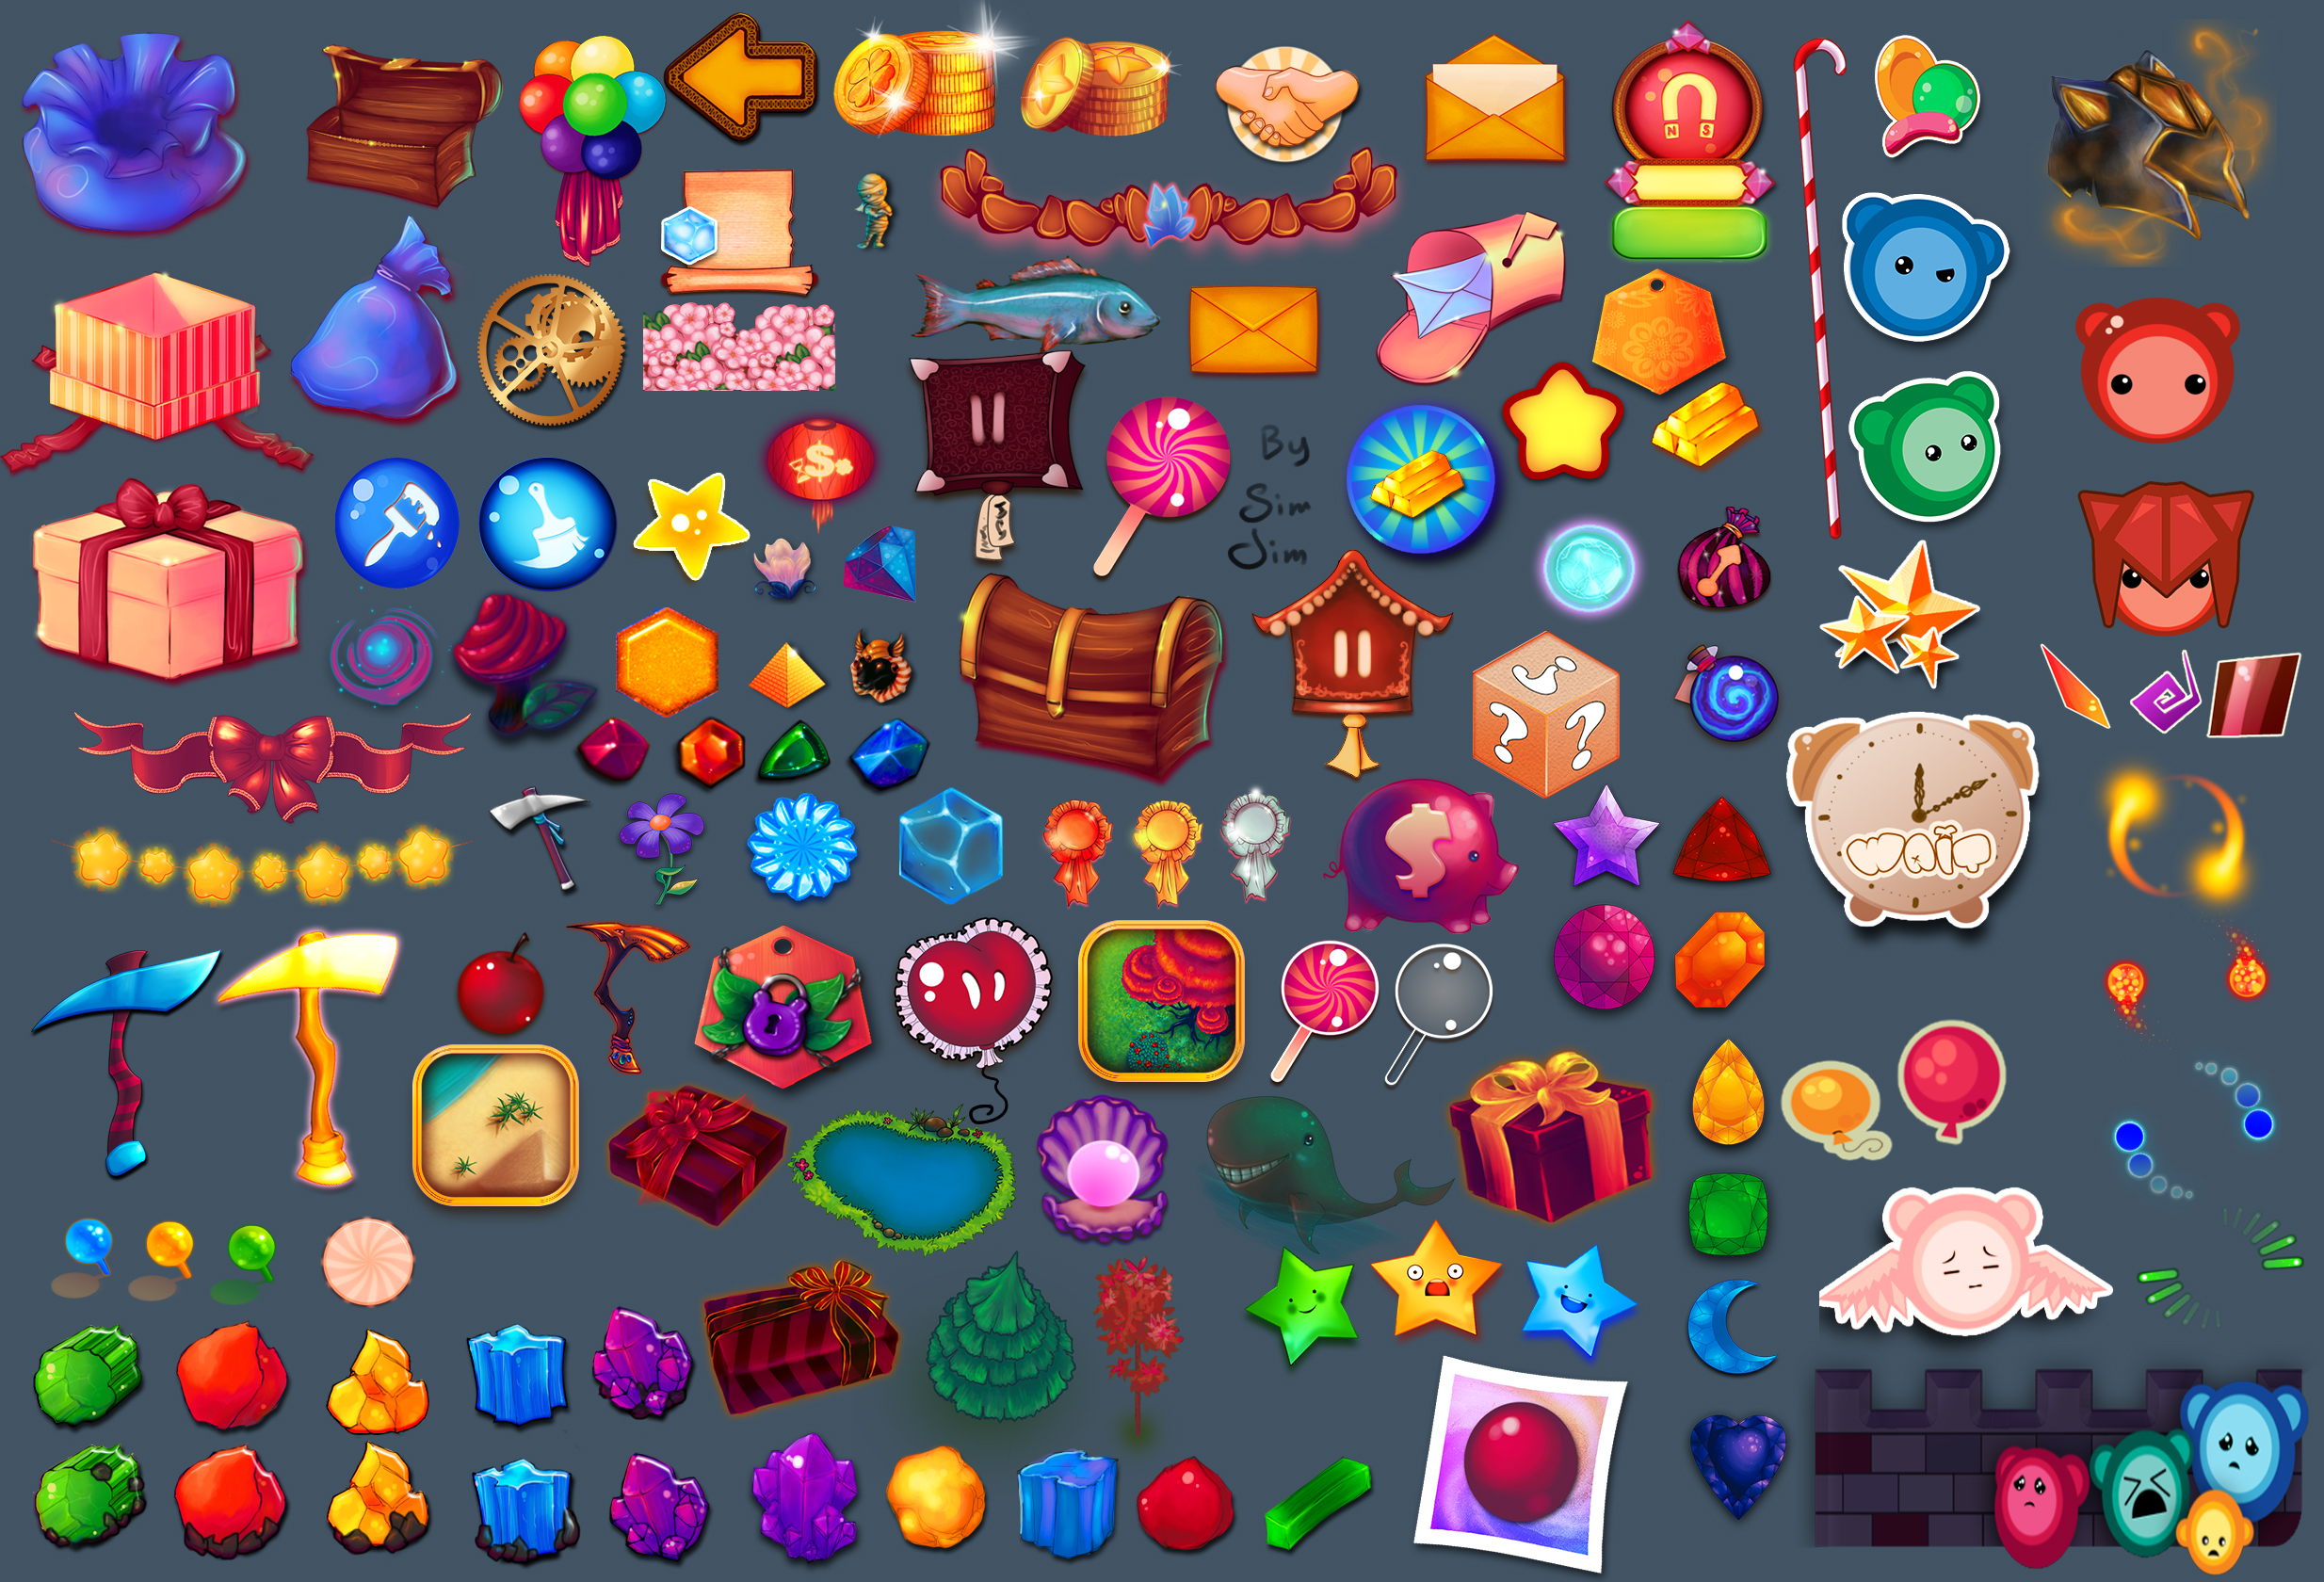 game items list 1 by simjim91 on deviantart